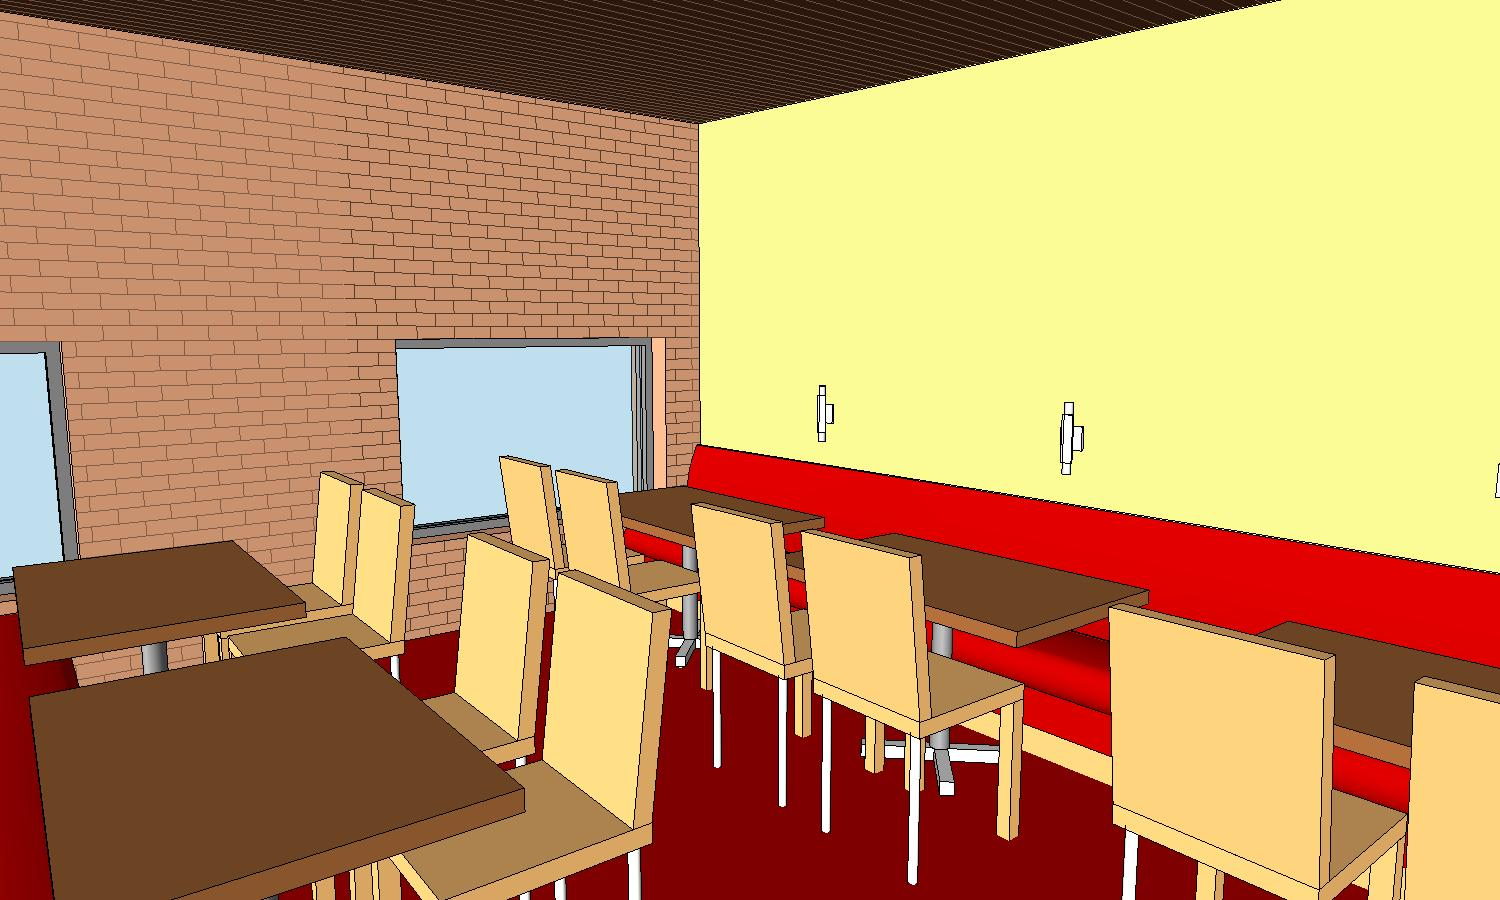 031211 - 3D View- Red Room - West.jpg